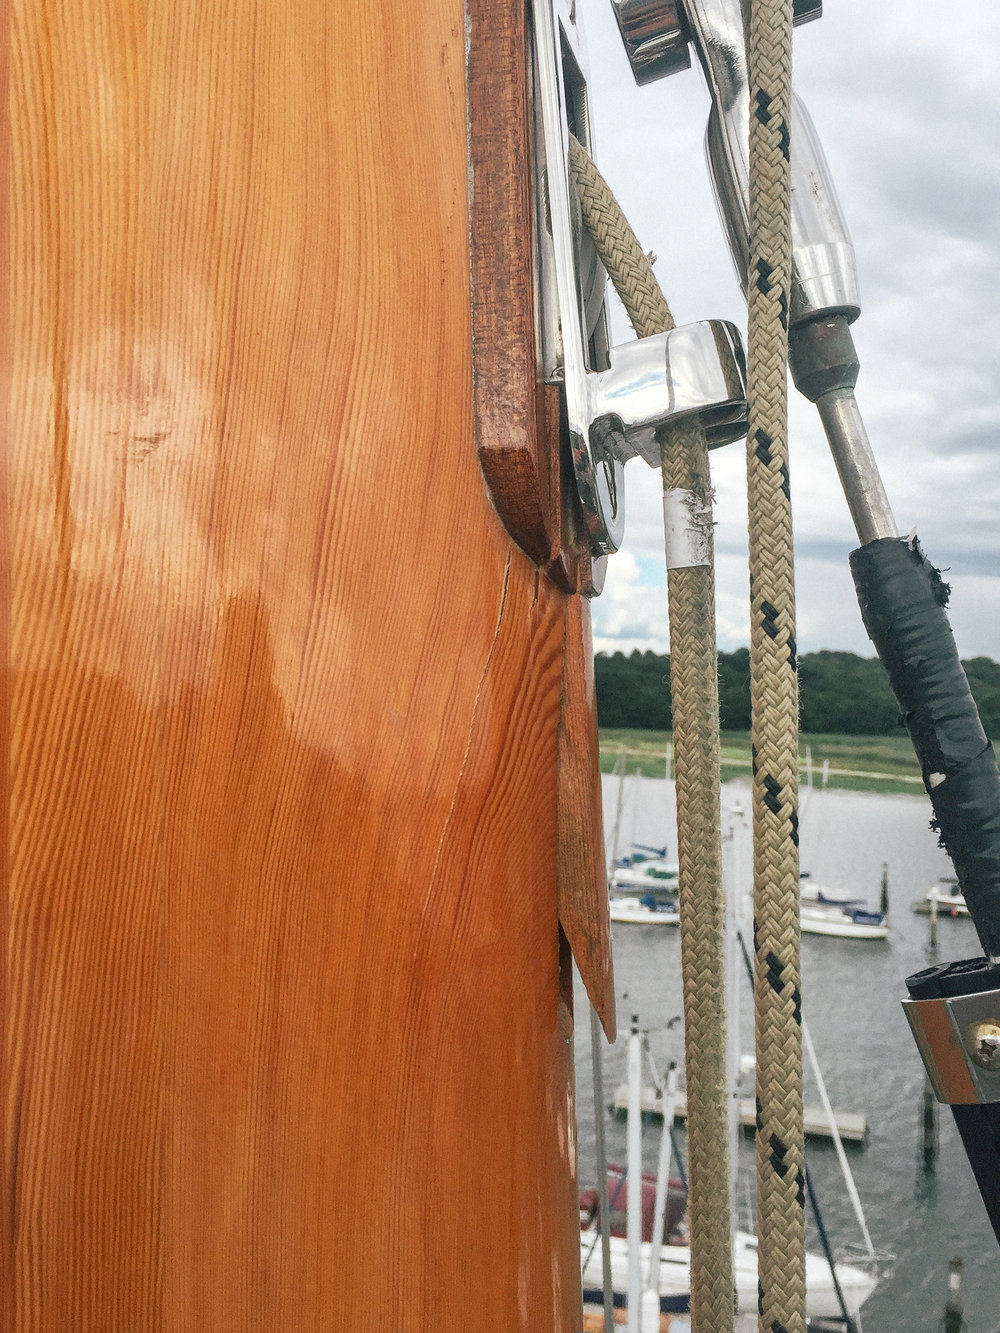 vertical crack in the timber had appeared, on the forward port quarter at the point where the ⅞ forestay intersects with the mast